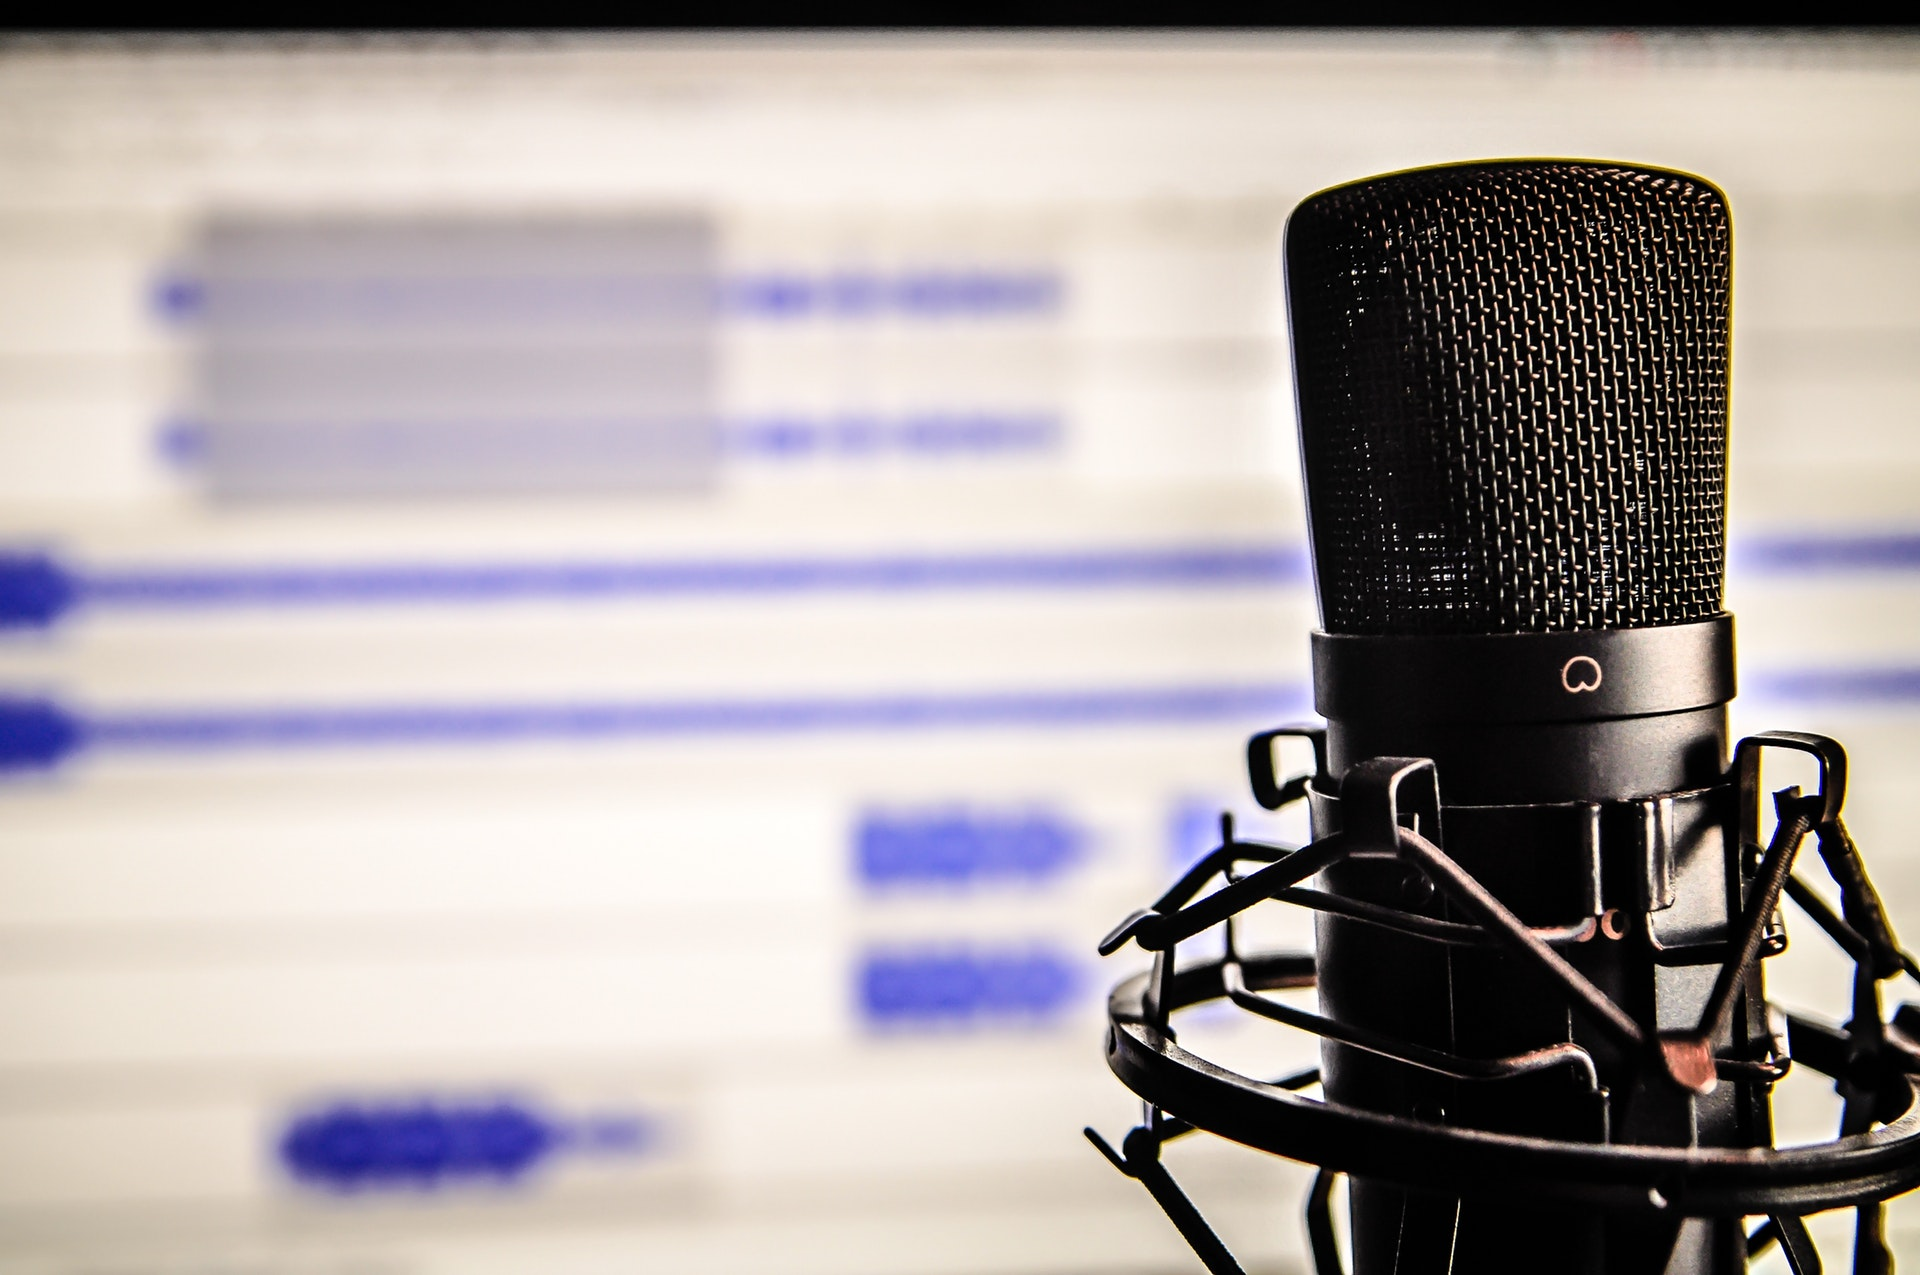 Microcurso de Acceso Abierto: Crea Podcasts en pocos minutos con Anchor